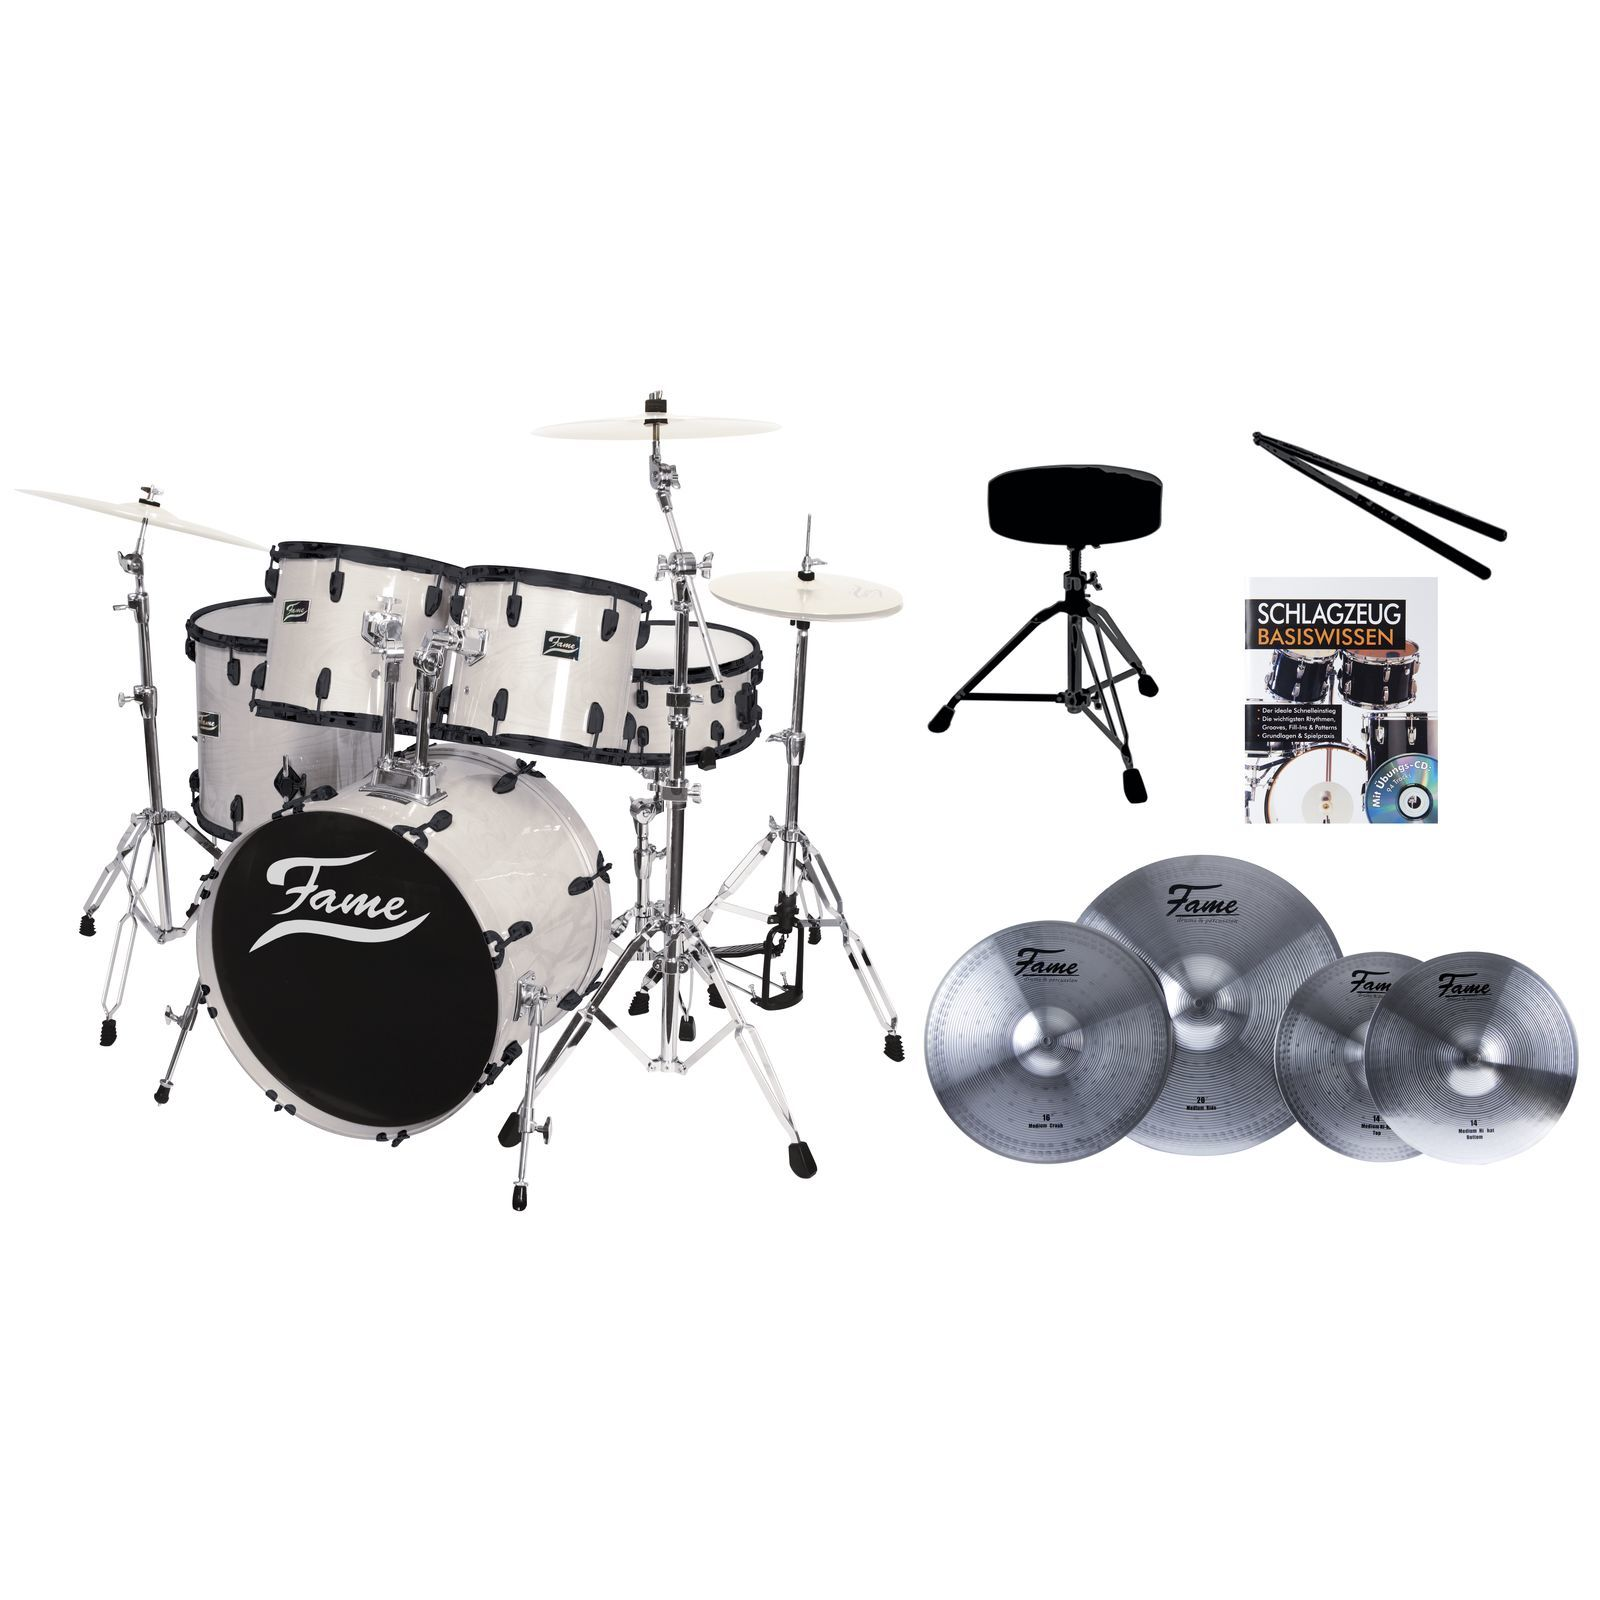 SET FAME Maple Standard White 20, + Reflex Becken, Hocker & Stix Produktbillede